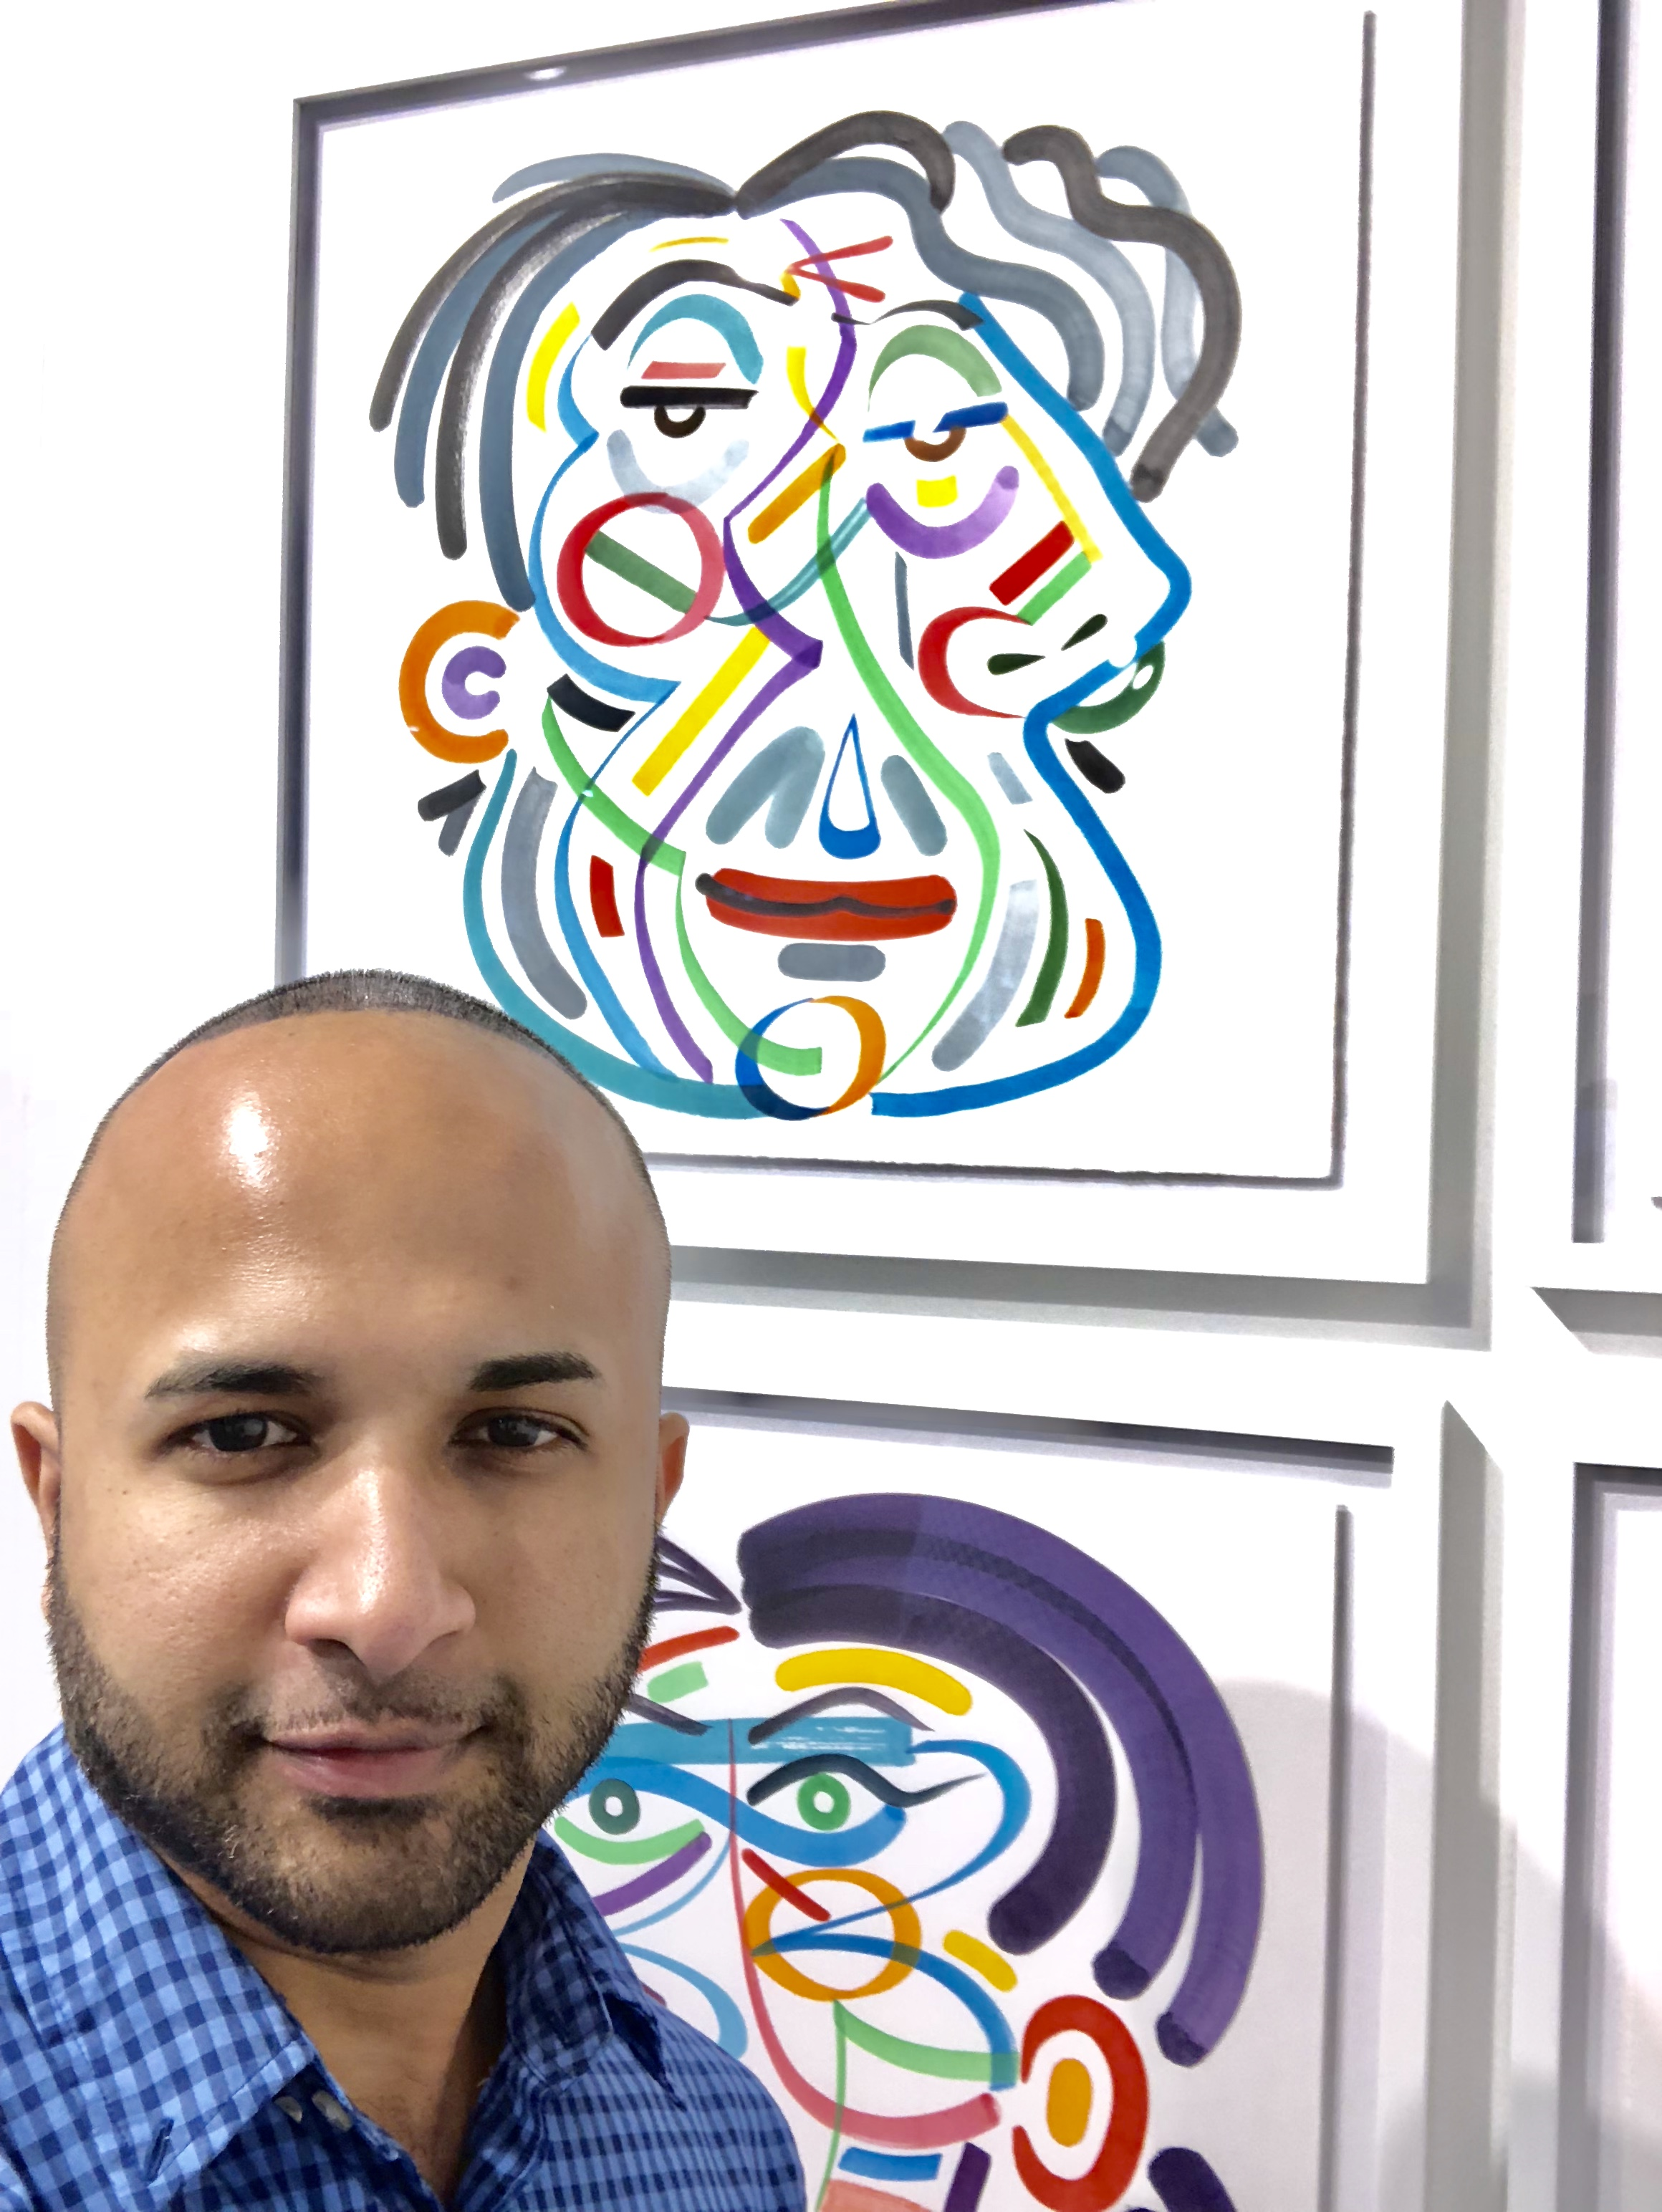 43 Terrence Narinesingh at Art Basel Miami 2017 Robert Pokorny California, USA PRIMITIVES, DERIVATIONS AND FORMATIONS